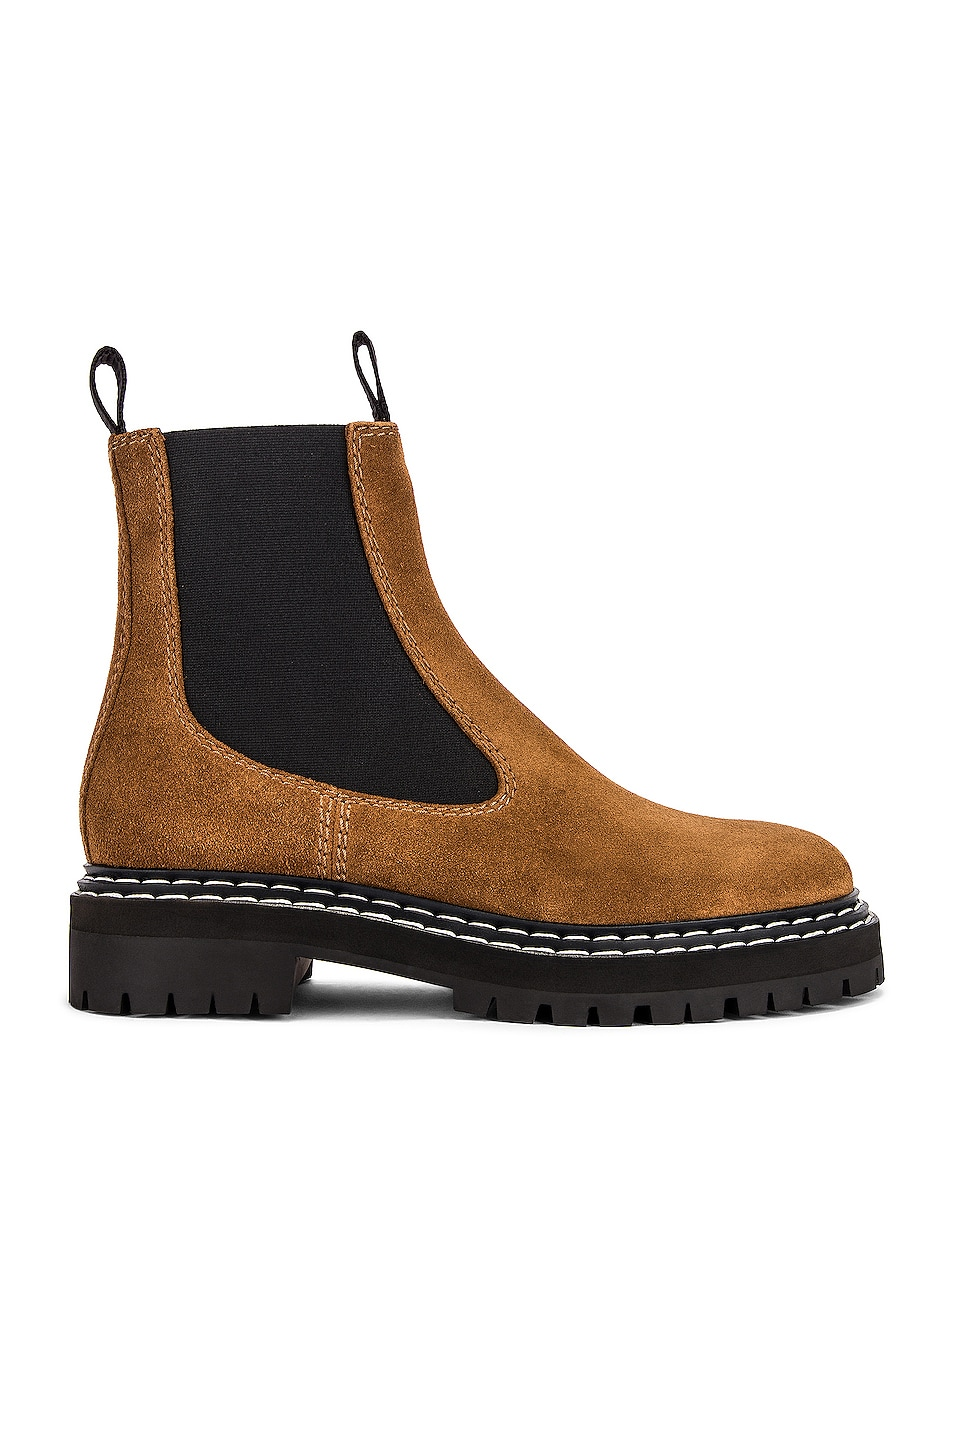 Image 1 of Proenza Schouler Lug Sole Chelsea Boots in Brown